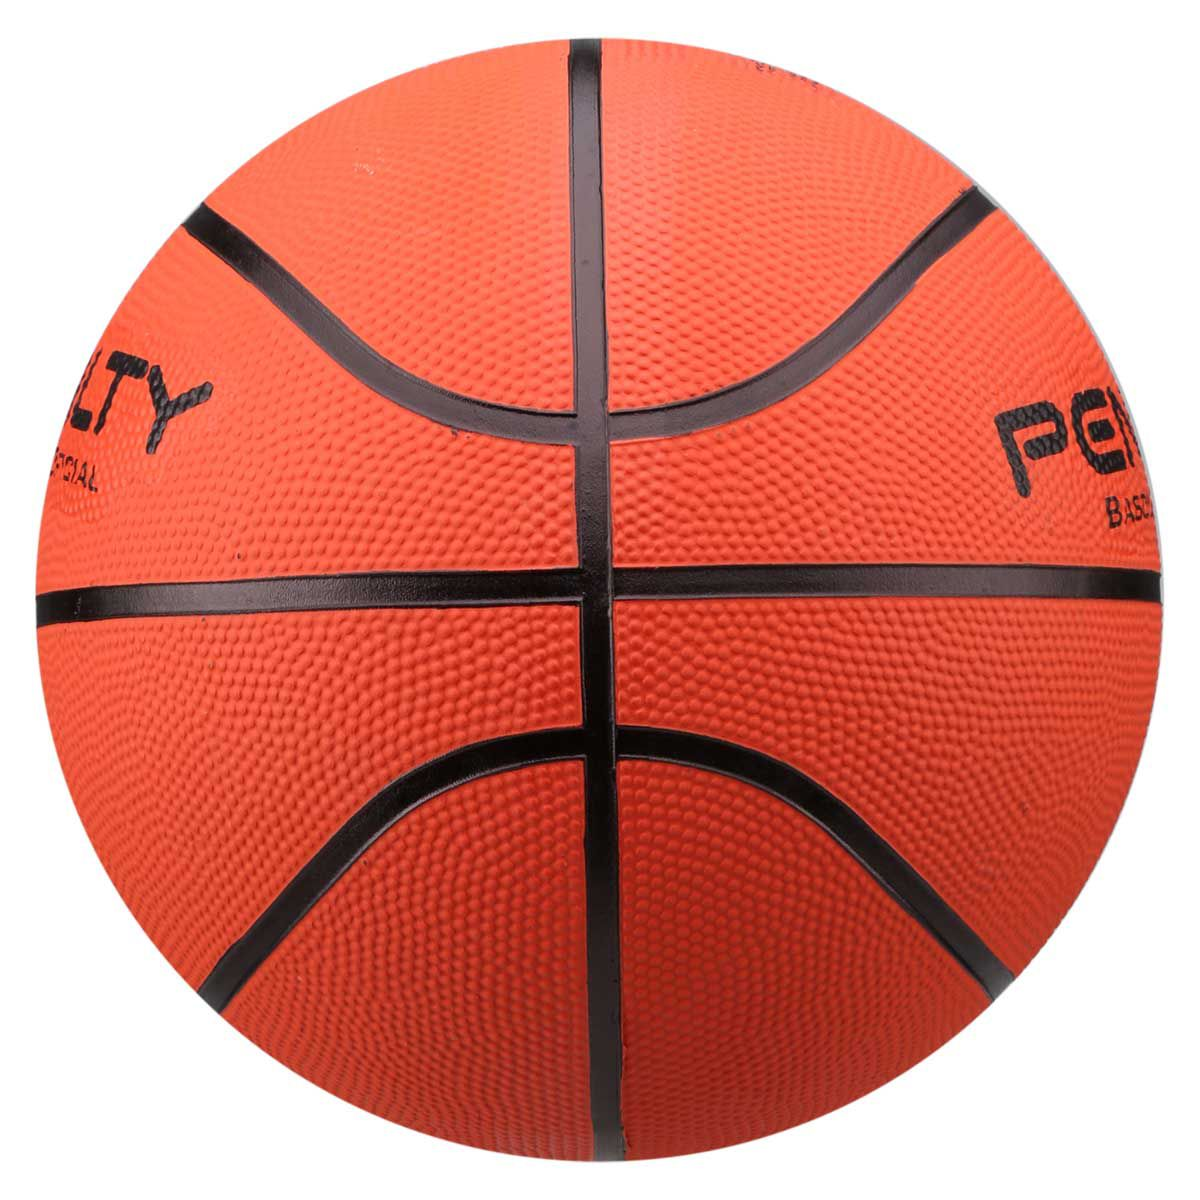 Bola Basquete Penalty Playoff 9 Ix Adulto Oficial